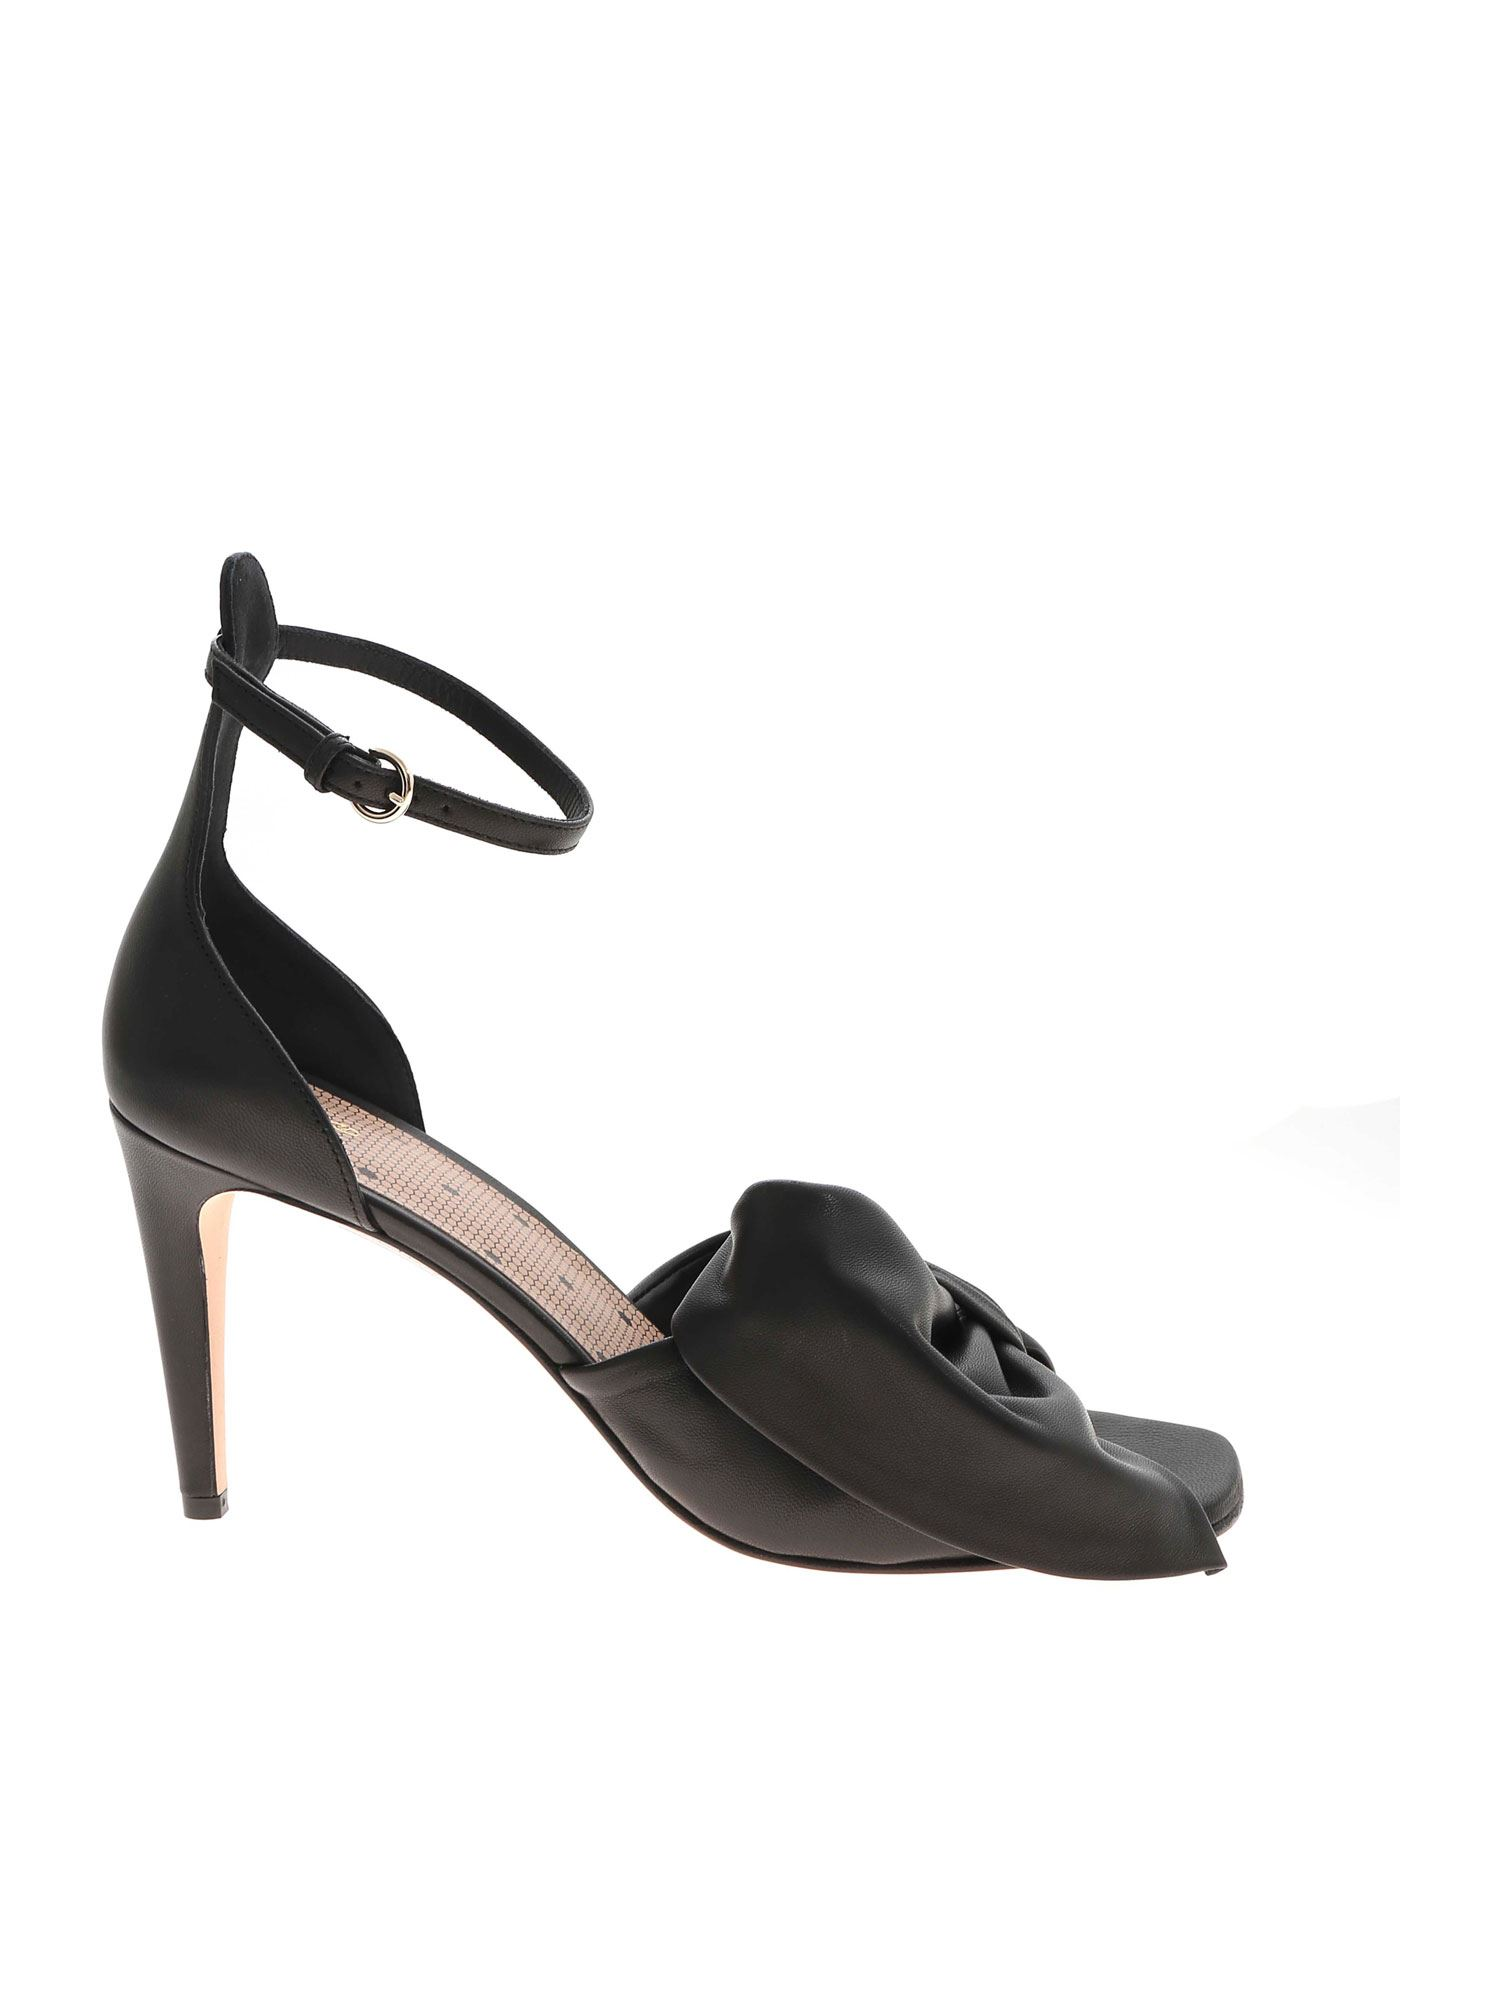 Red Valentino BOW SANDALS IN BLACK